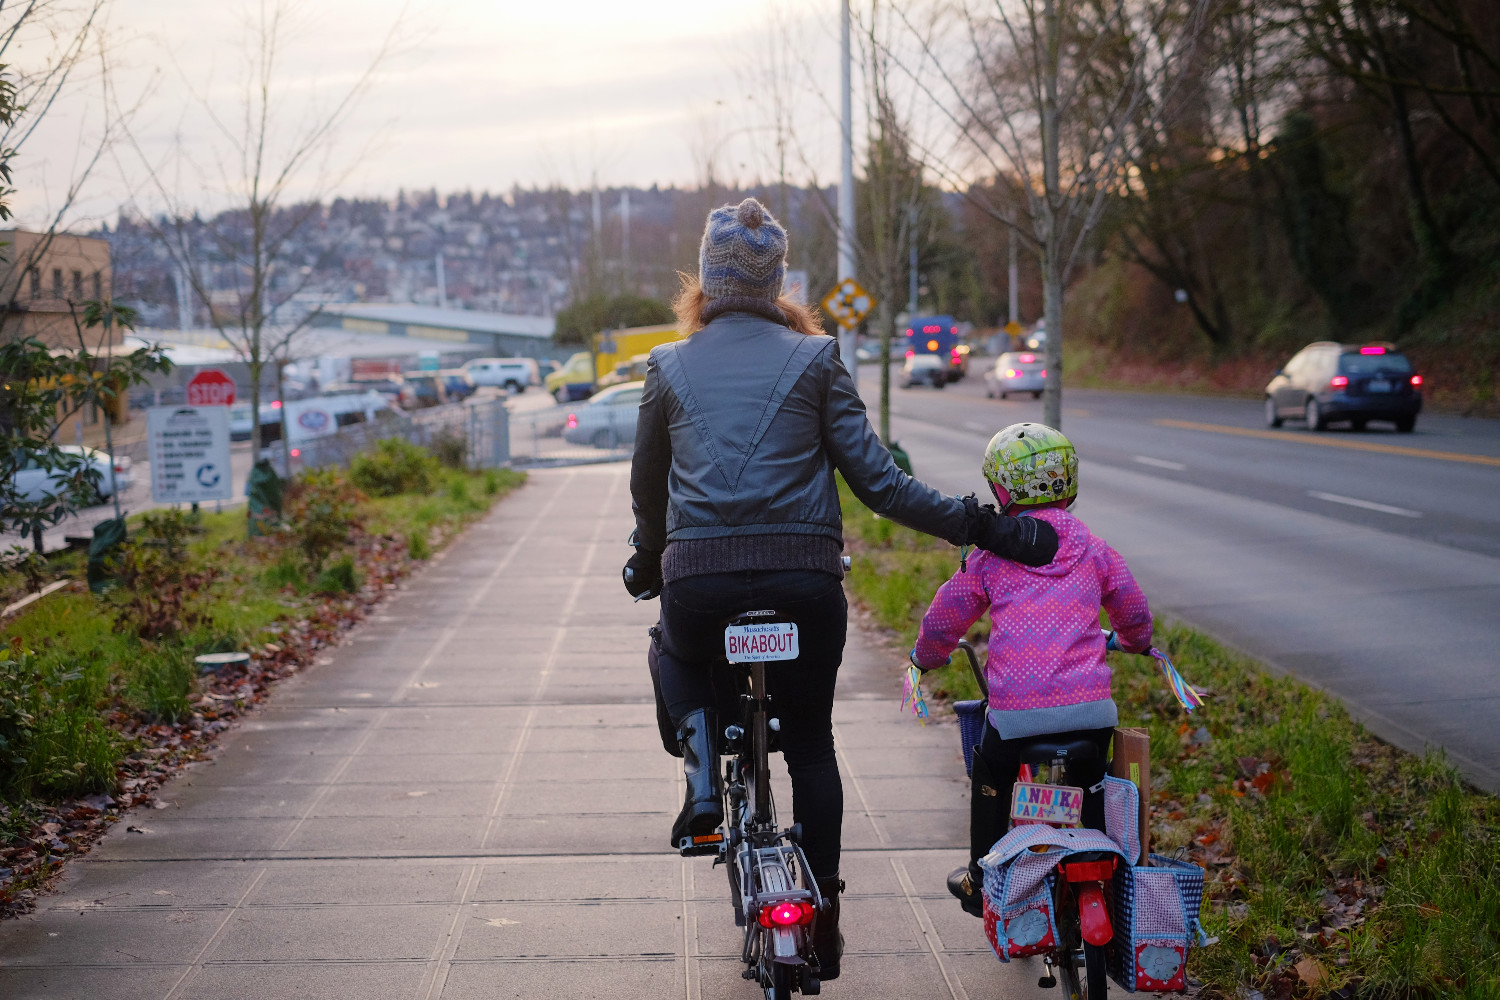 Lake Union Loop Trail. Photo by Kyle Ramey of Bikabout.com